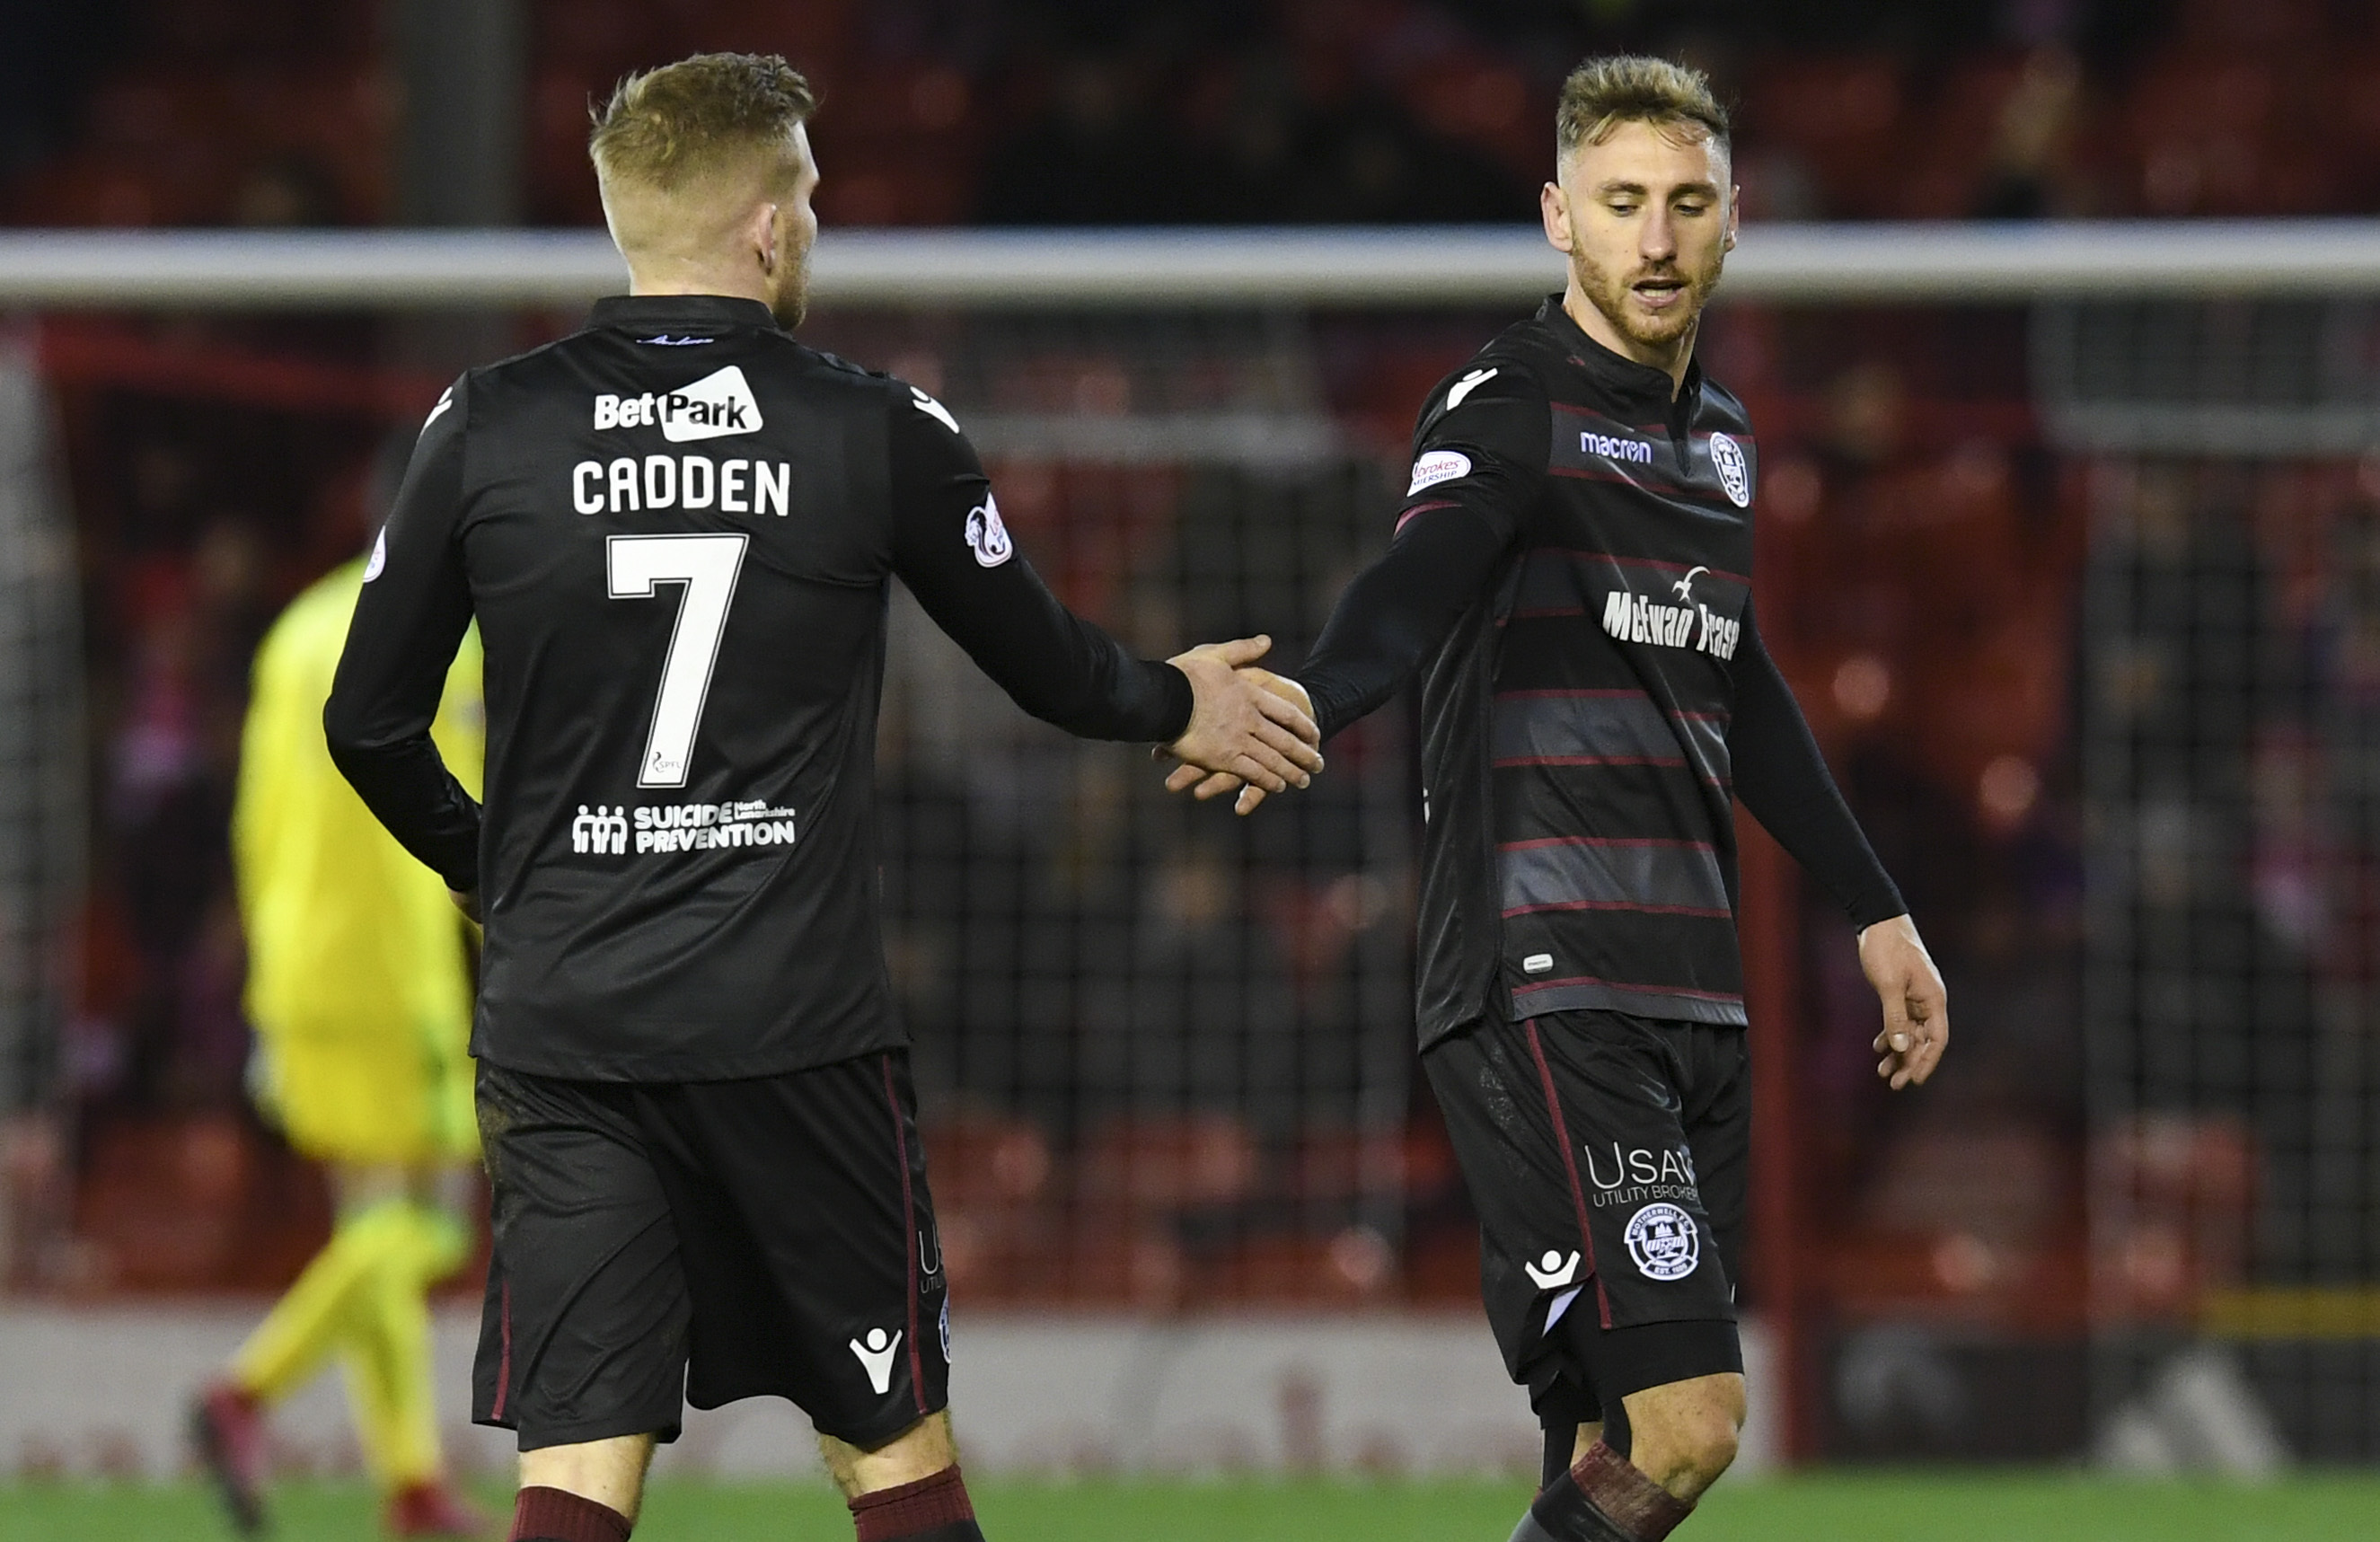 Motherwell's Chris Cadden and Louis Moult celebrate at full-time (SNS)